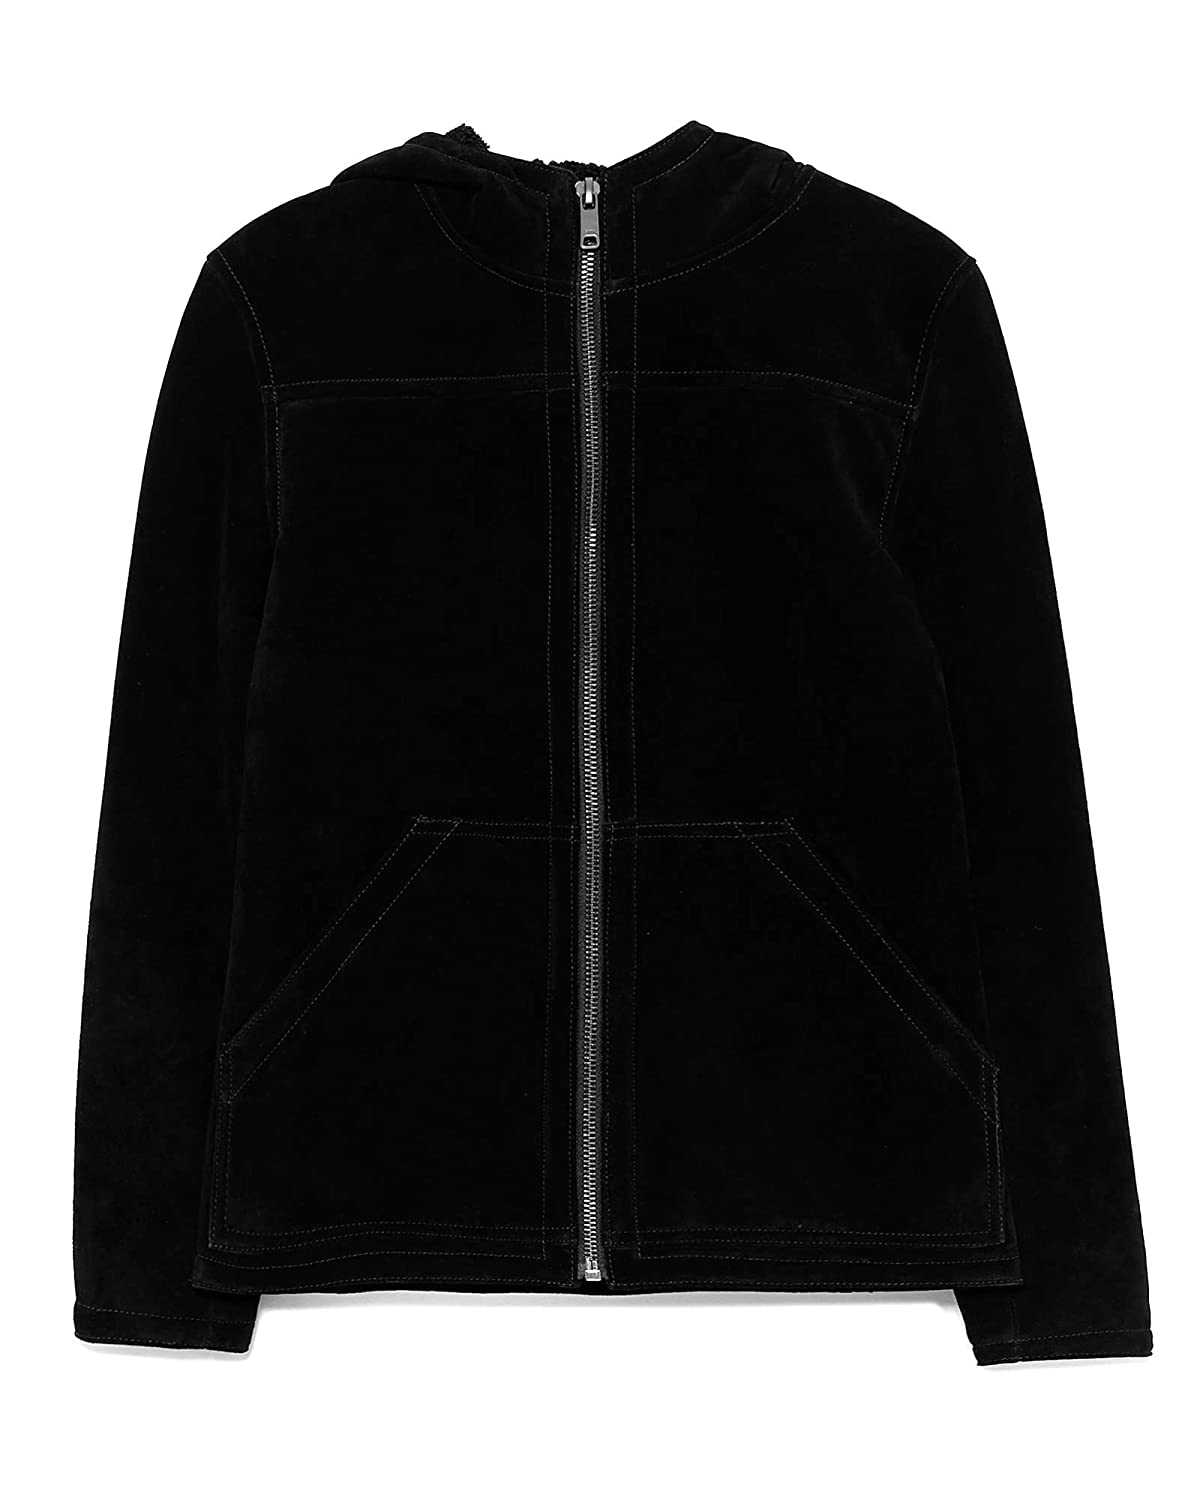 factory outlets best place hot product Zara Homme Double-Sided Lambskin Jacket 8281/471